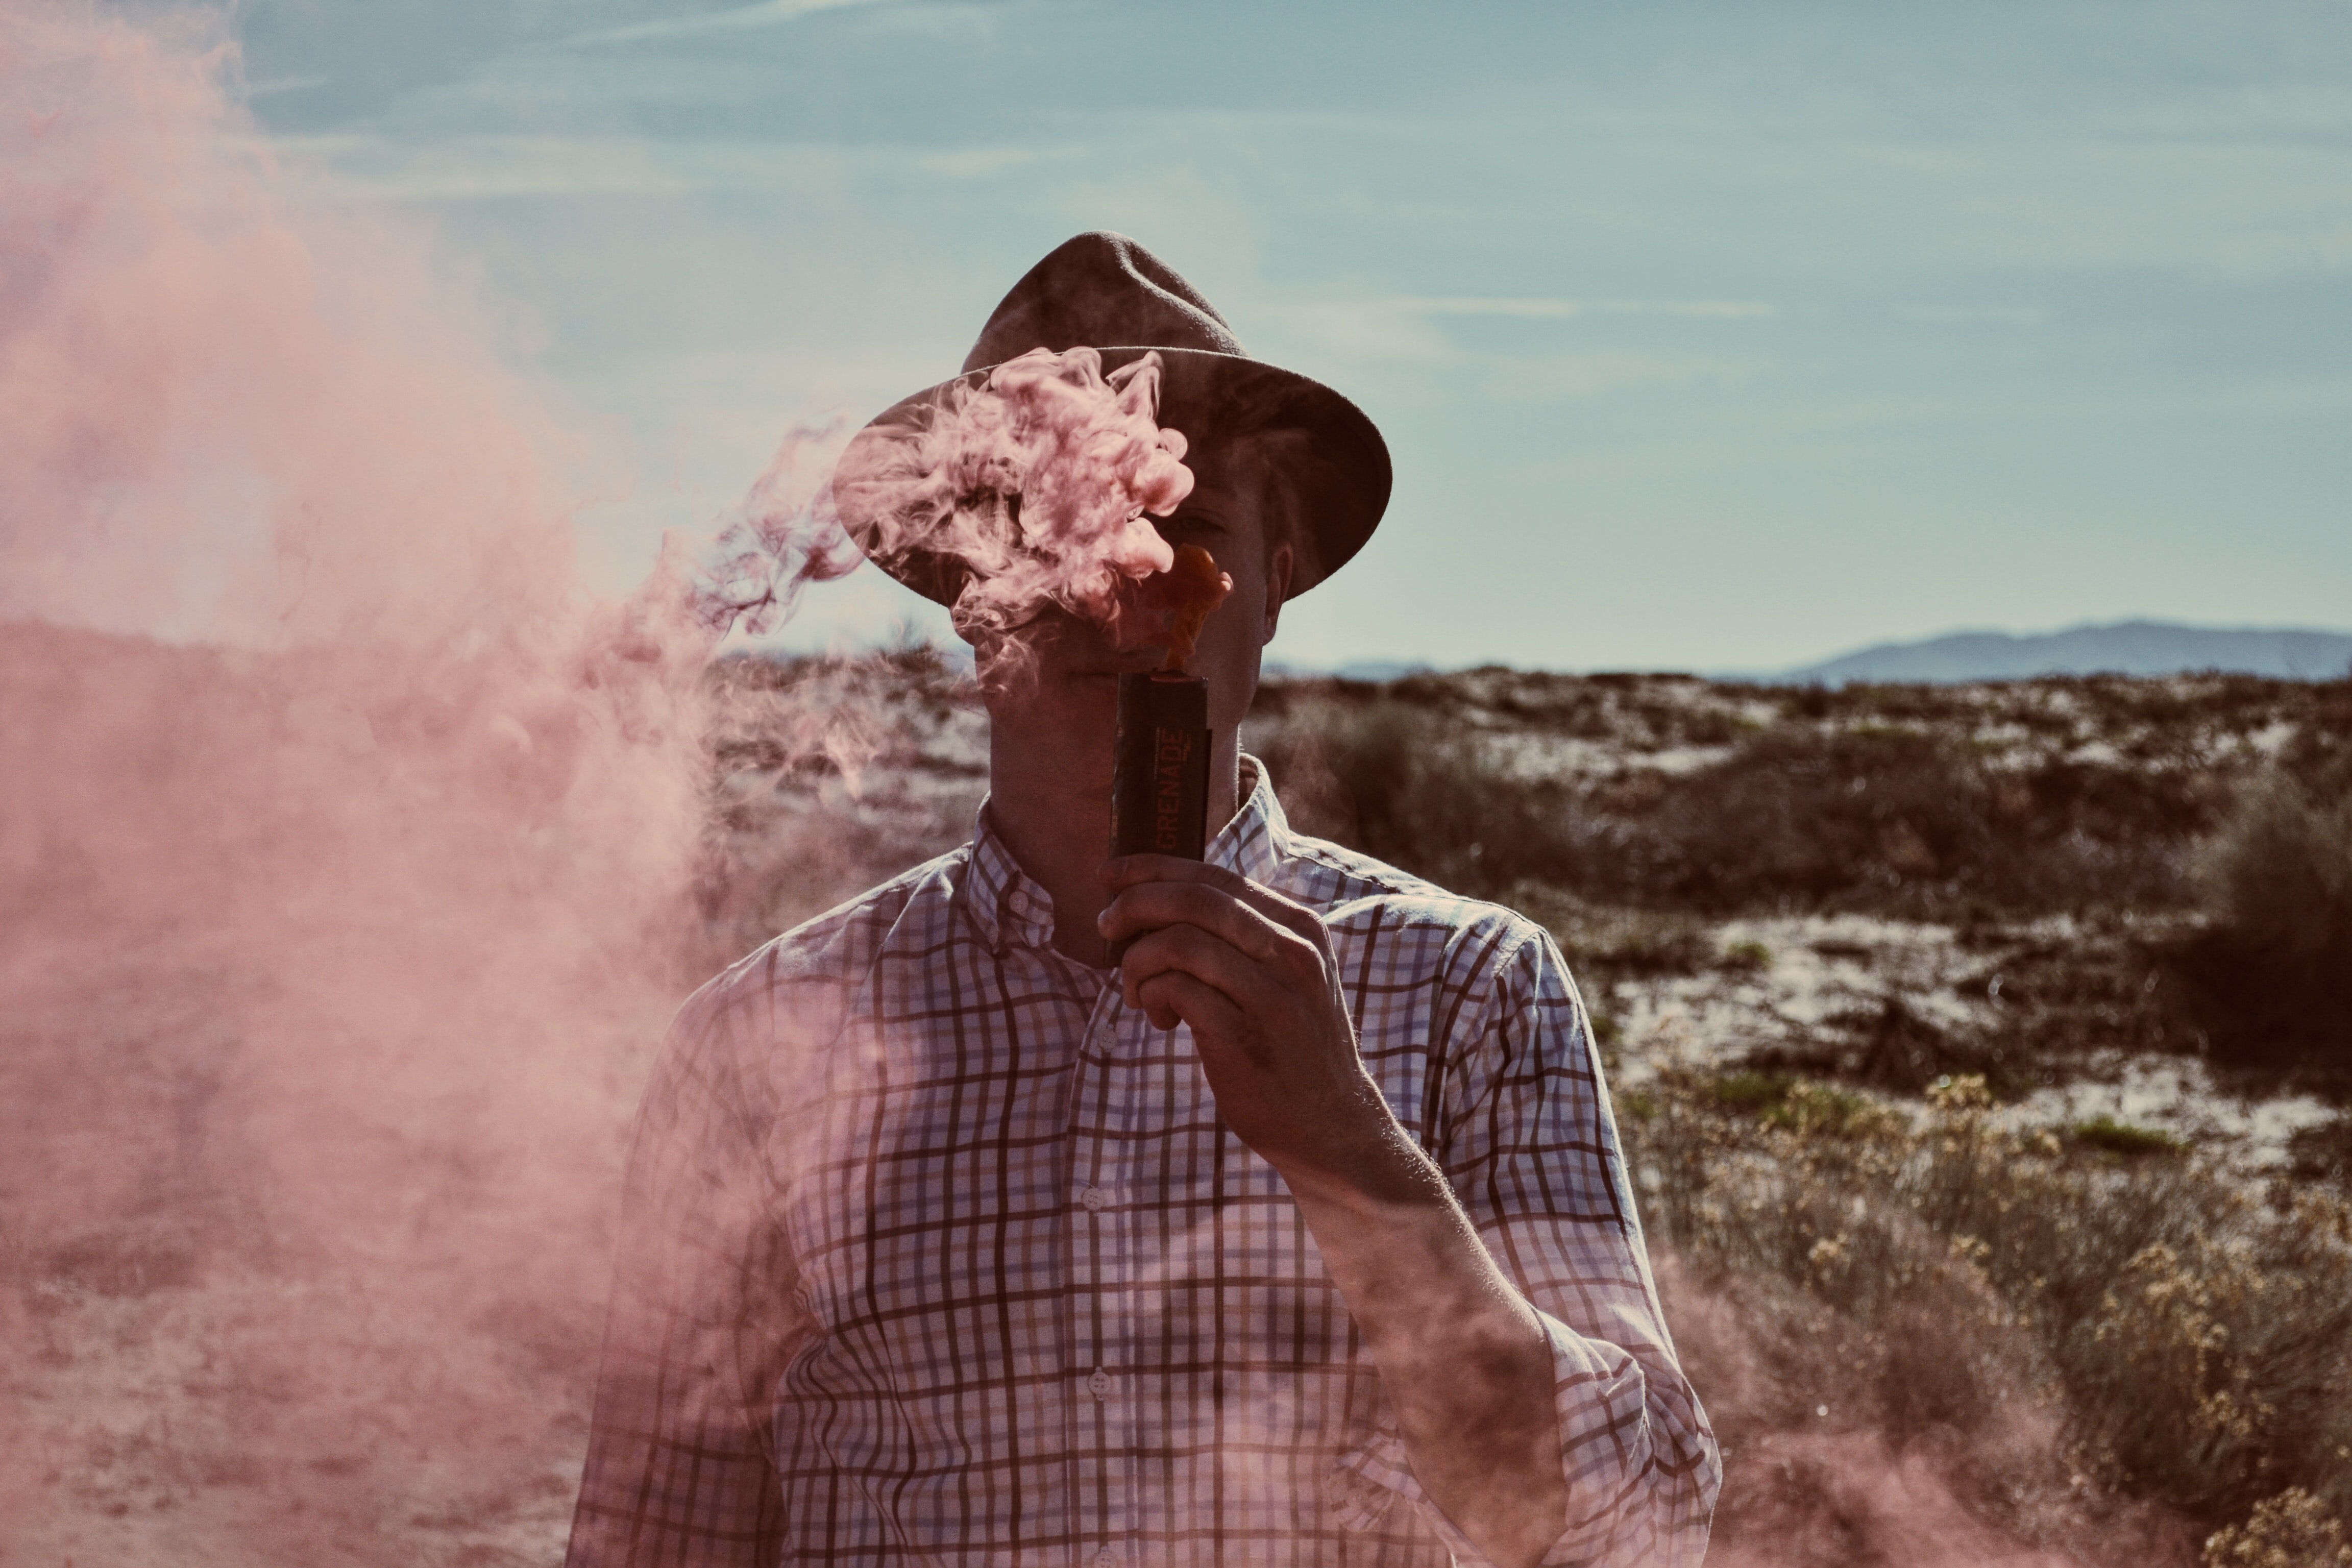 Artistic portrait of a man burning red smoke in the desert